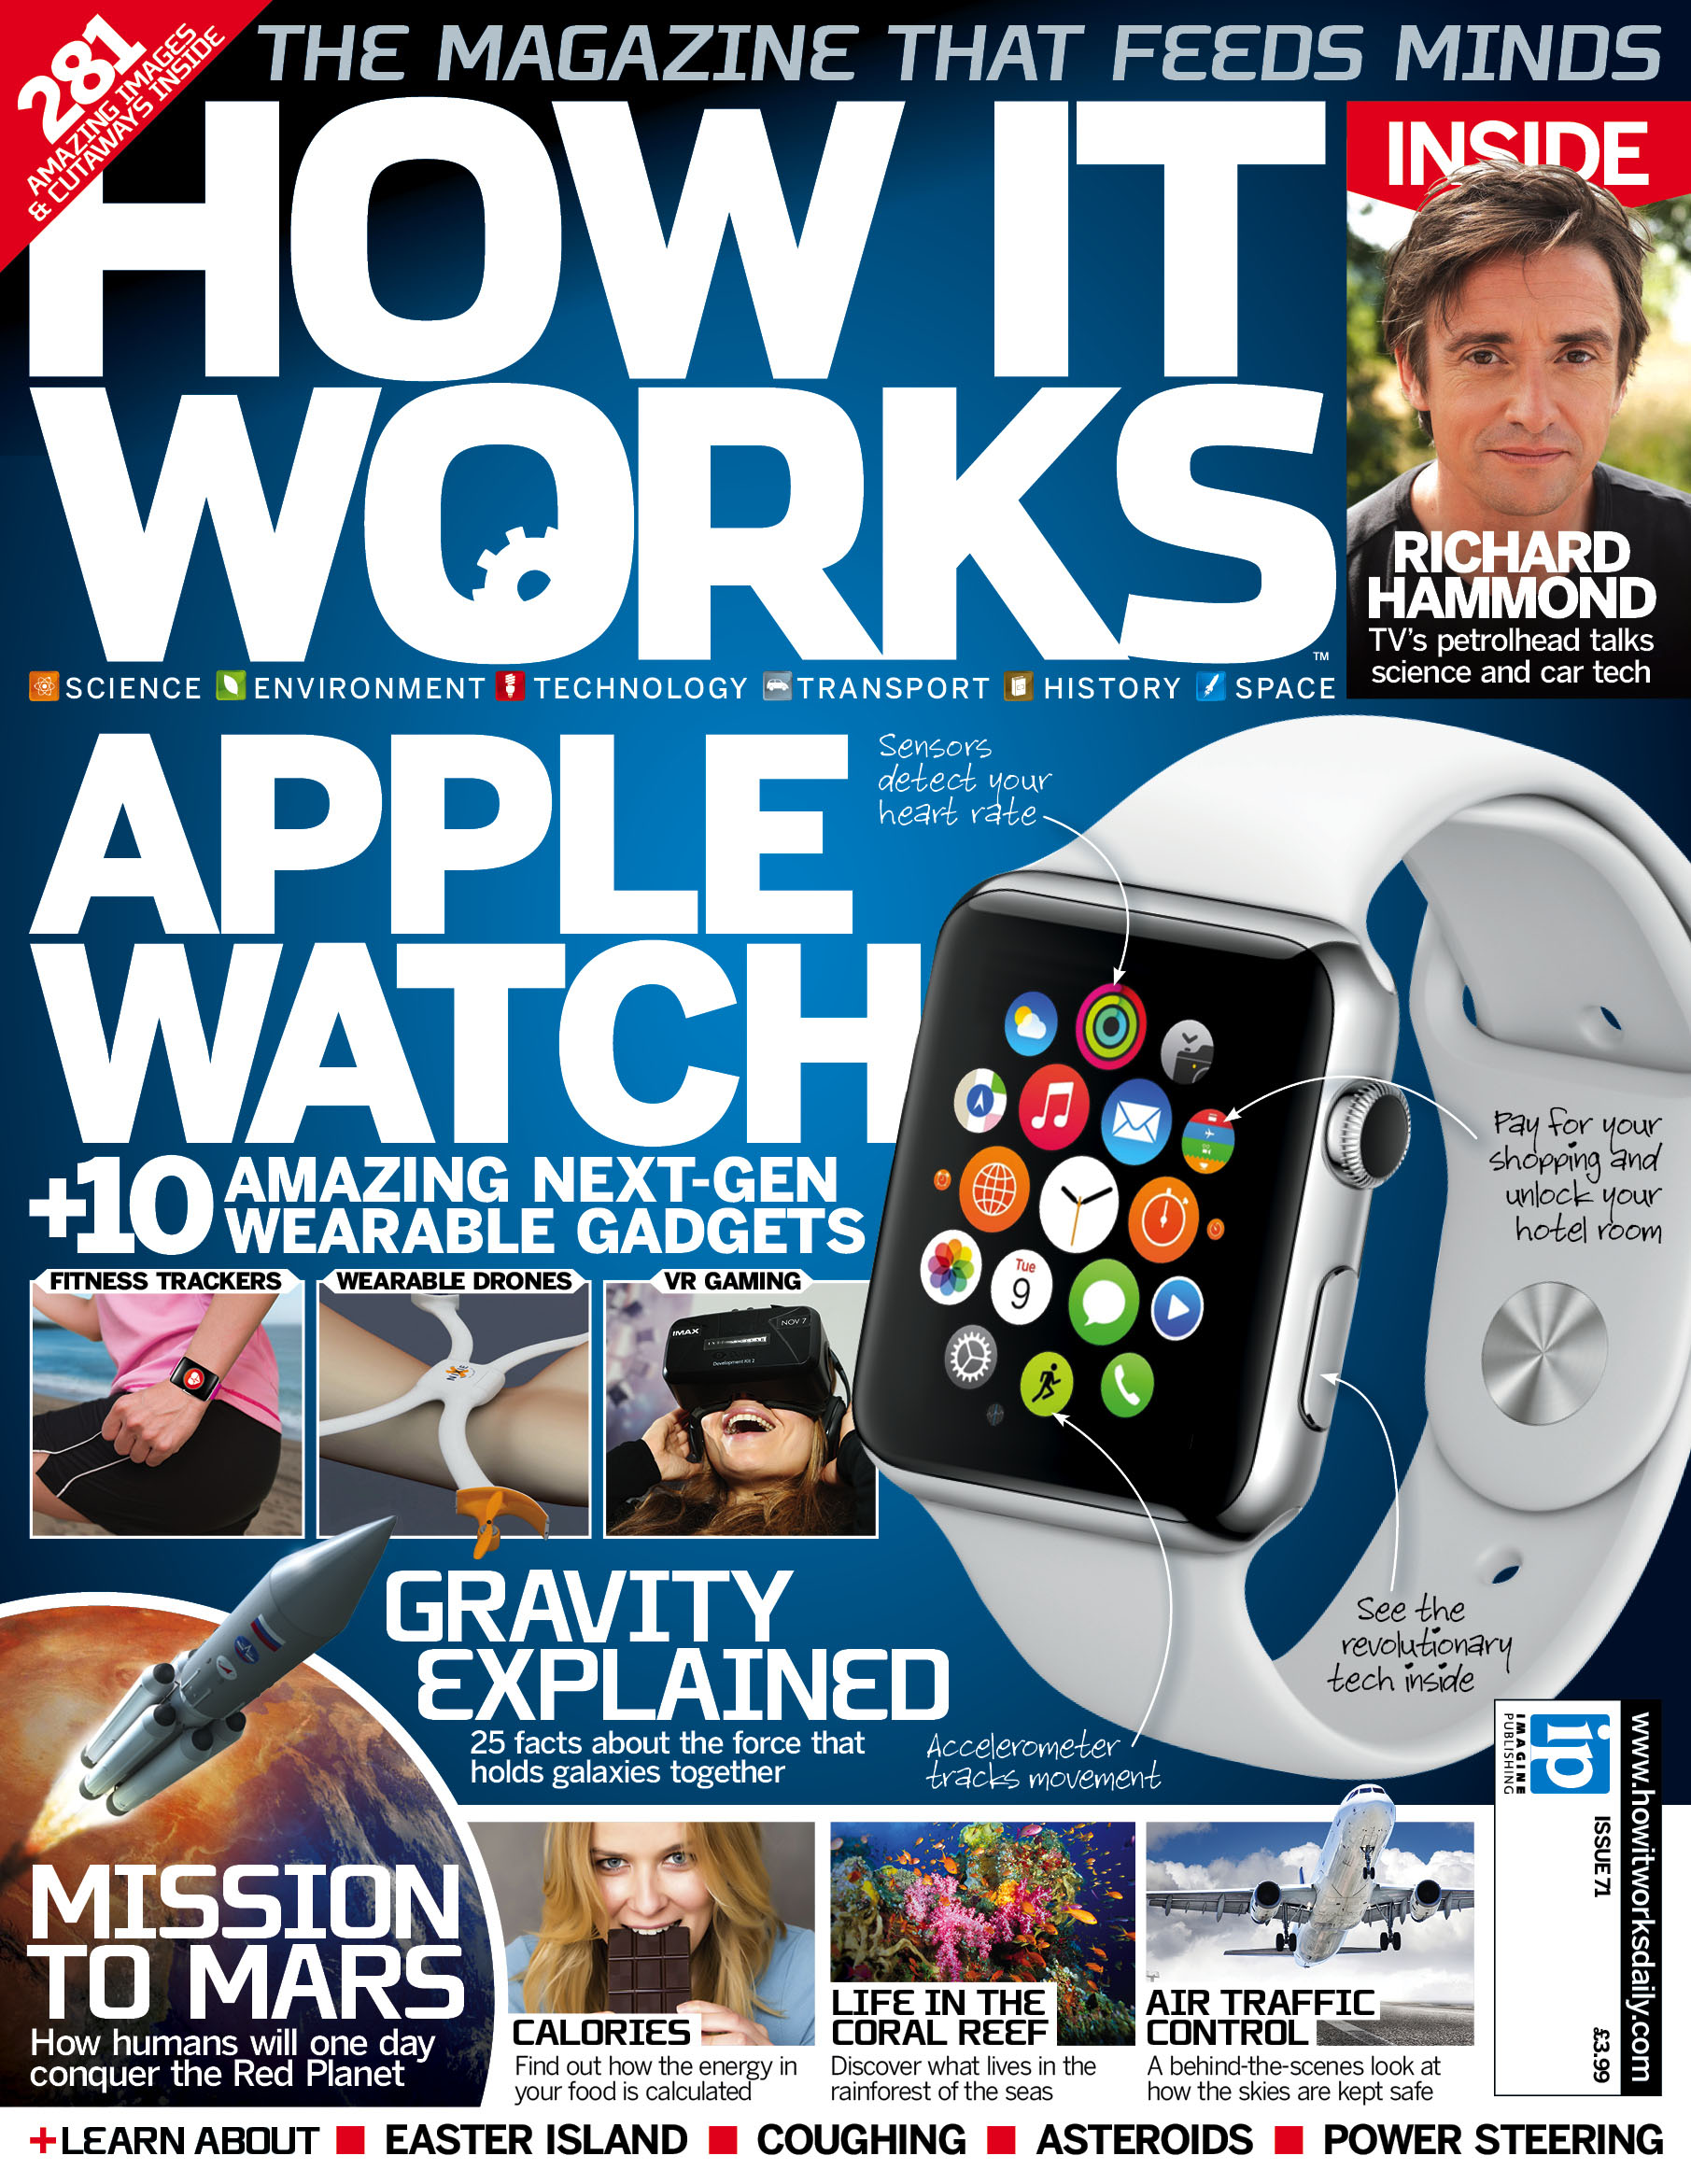 Apple Watch  other wearable tech explained in issue 71 of How It Works  How It Works